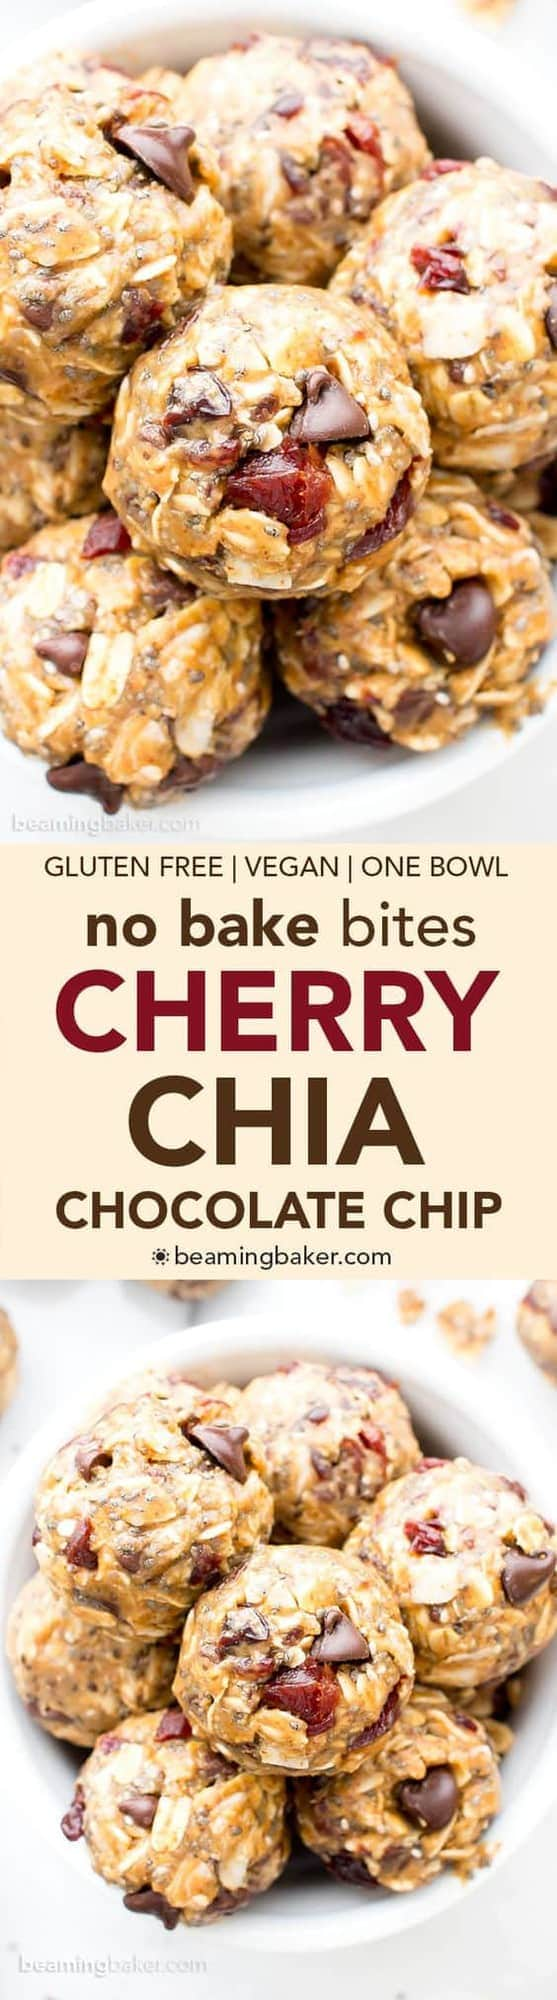 No Bake Cherry Chocolate Chip Chia Energy Bites by The Beaming Baker | The Ultimate Collection of Energy Bite Recipes